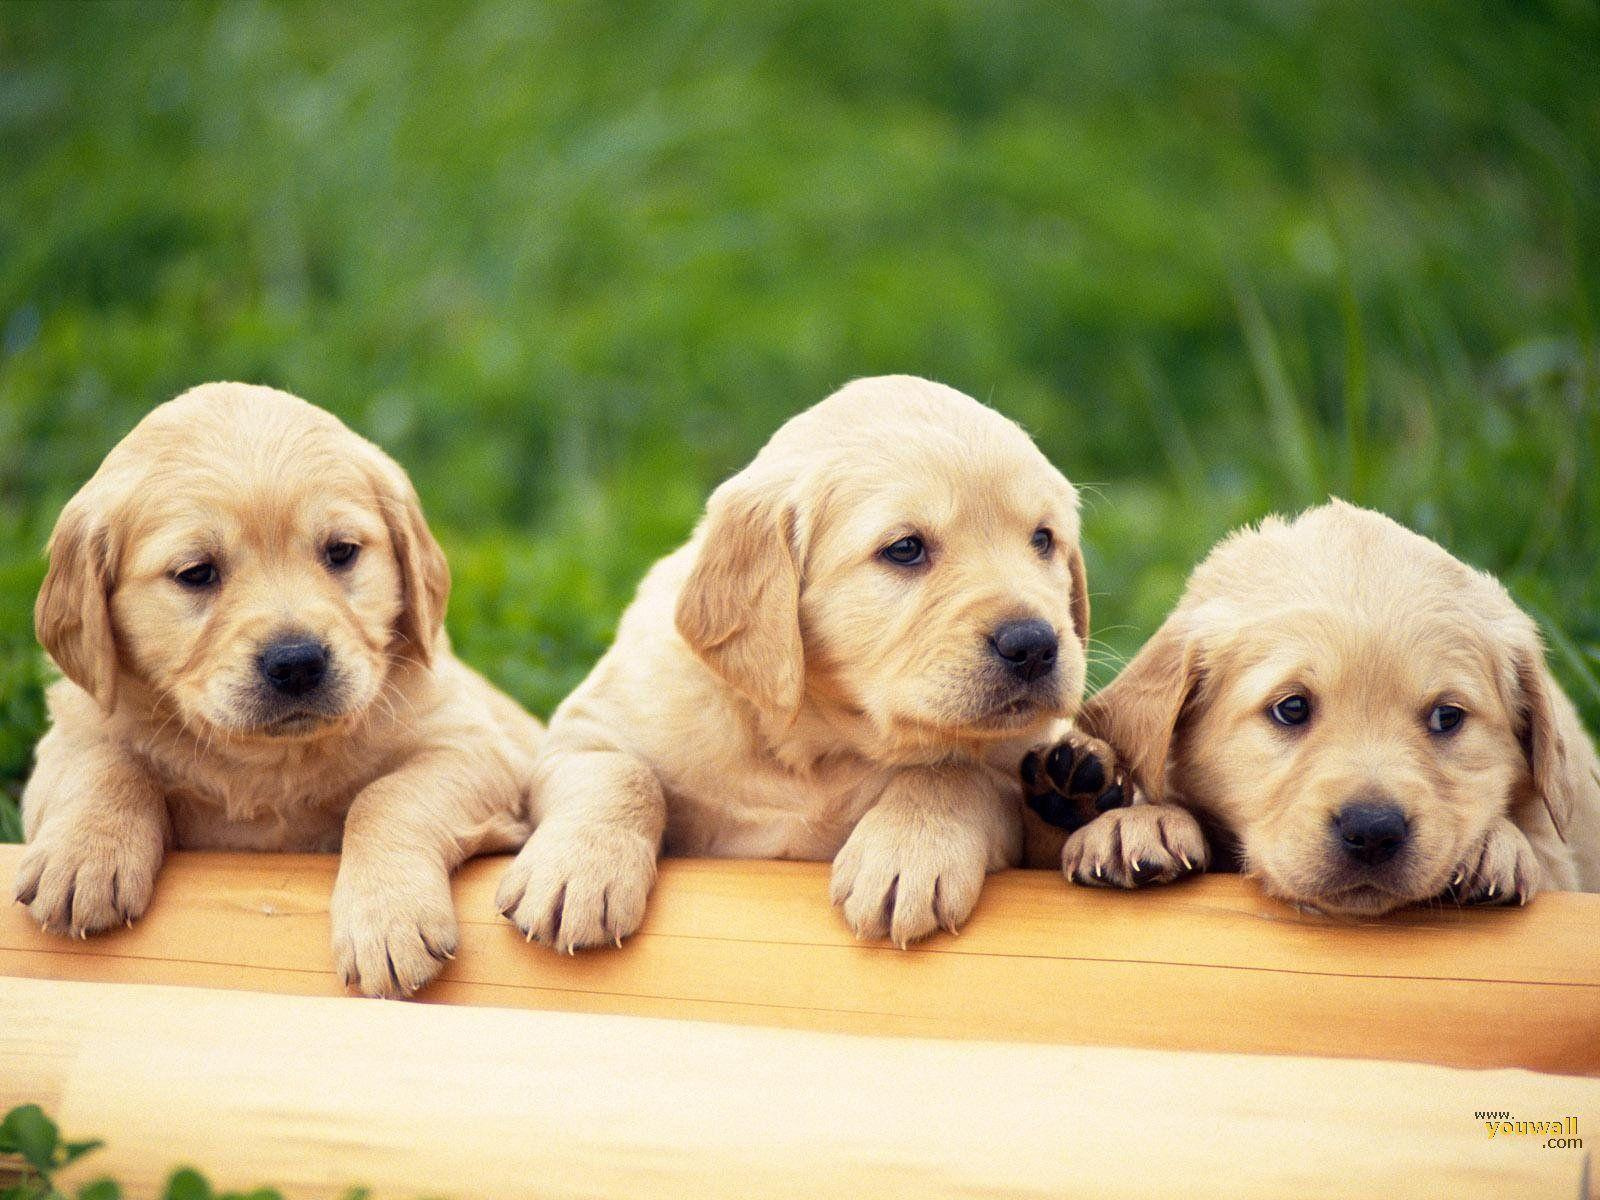 Cute Dogs Wallpapers 1080p